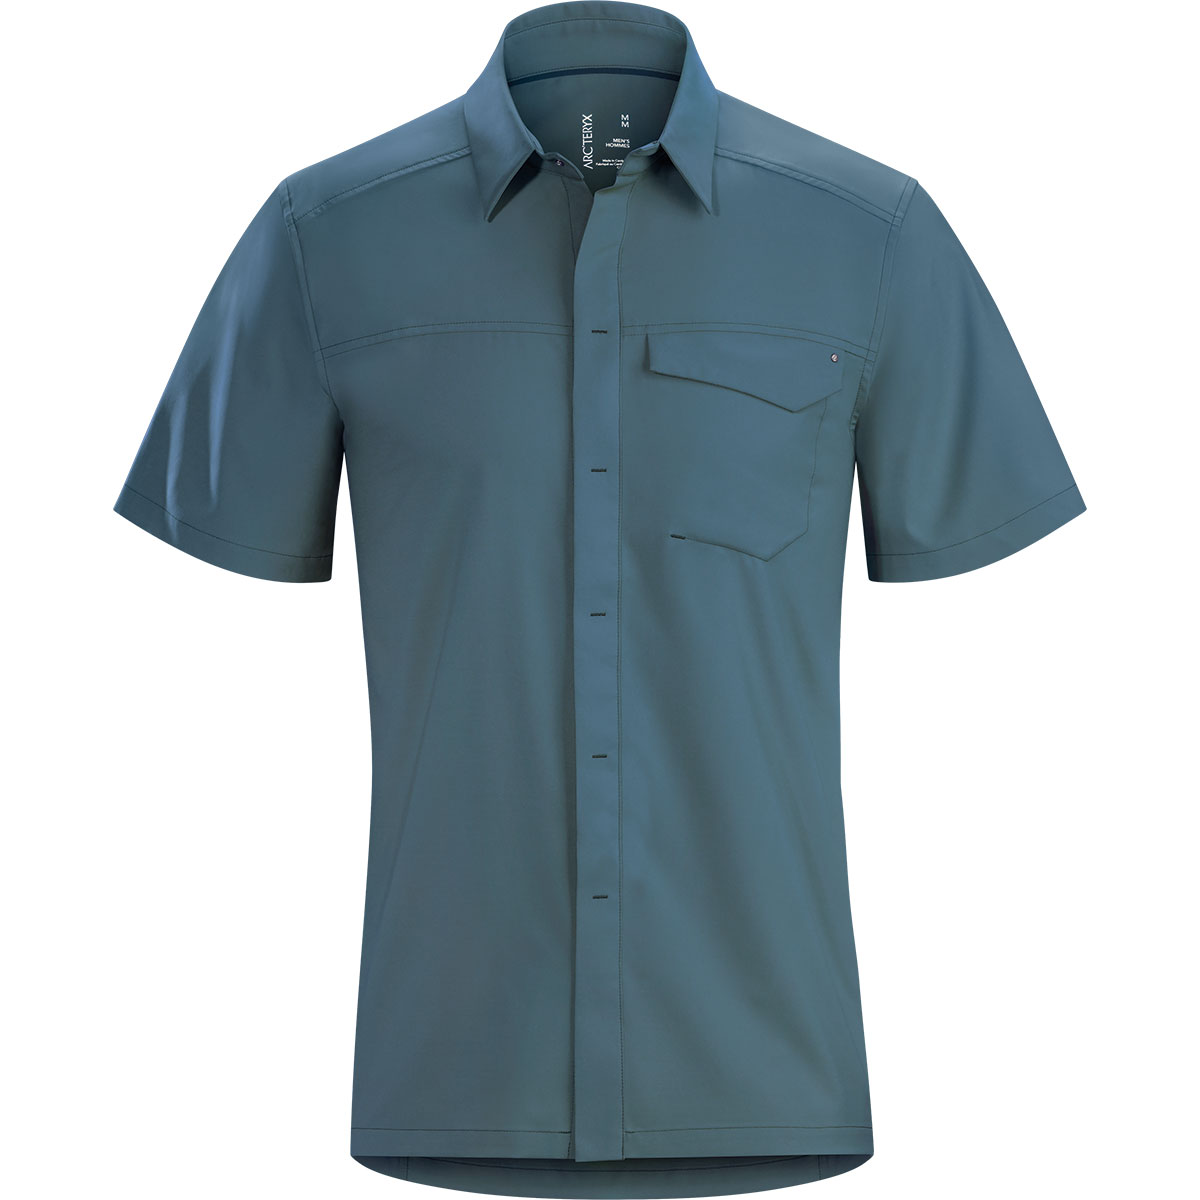 Arcteryx Skyline Ss Shirt Mens Discontinued Colors Urban